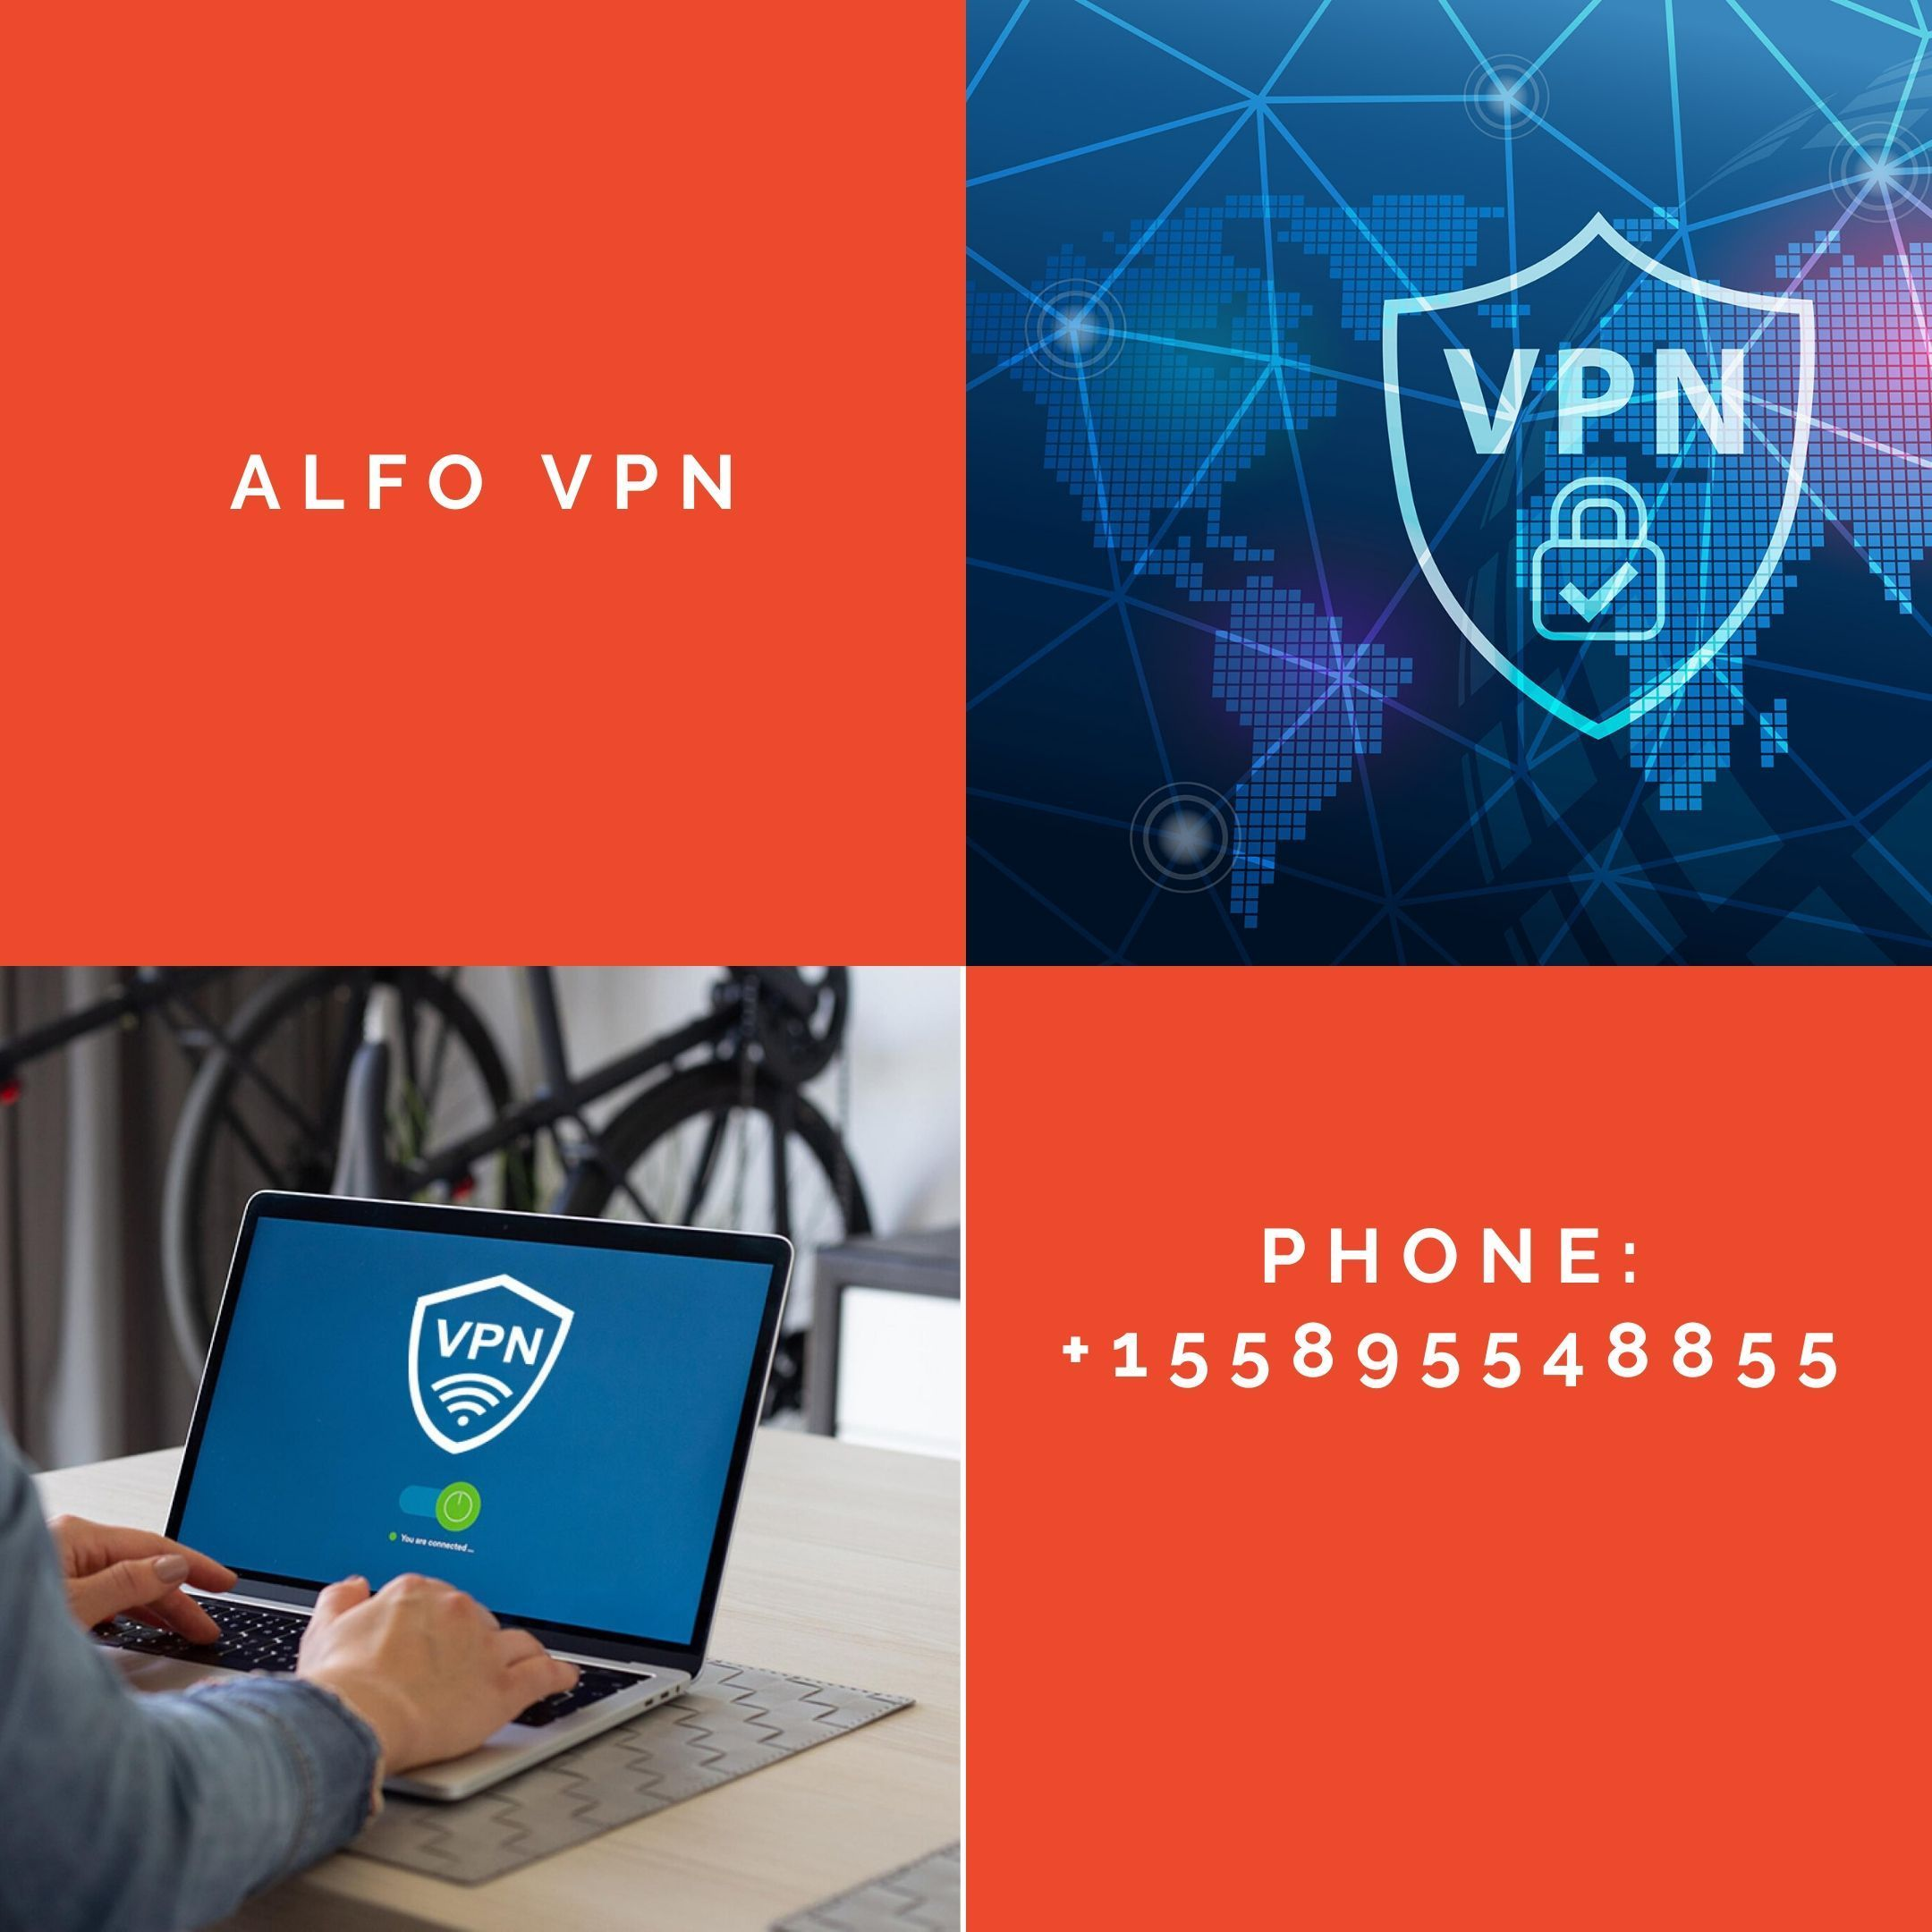 a02c5ca3b69d8de897cf16dd5a173bef - What Is The Best Vpn Service Provider